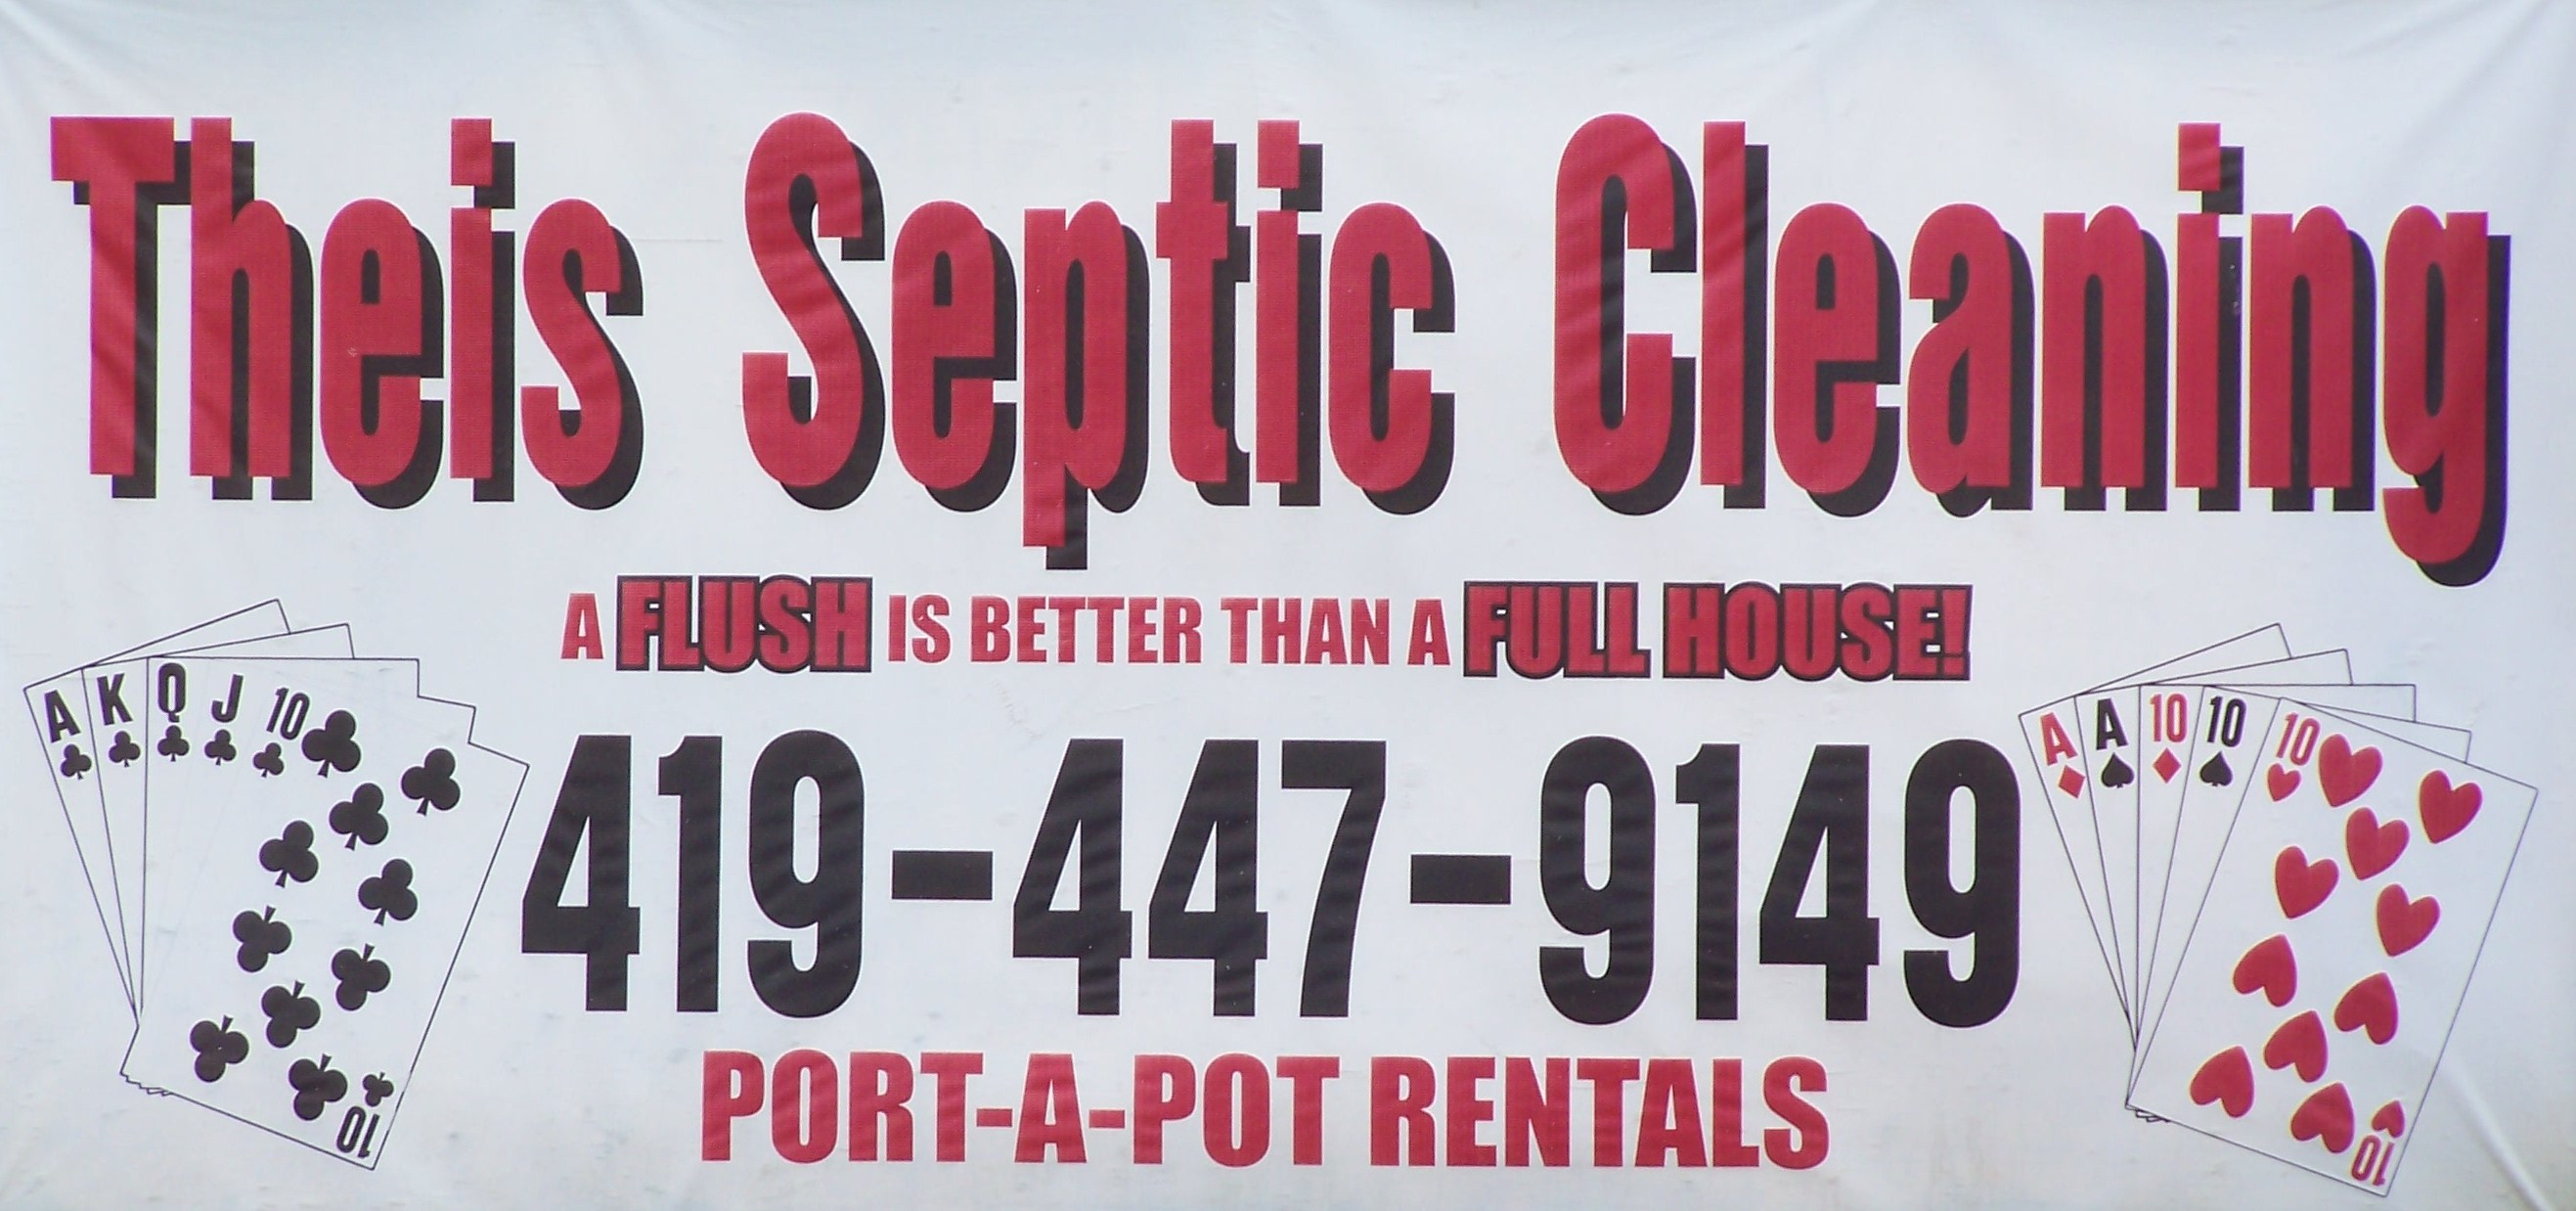 Theis Septic Cleaning